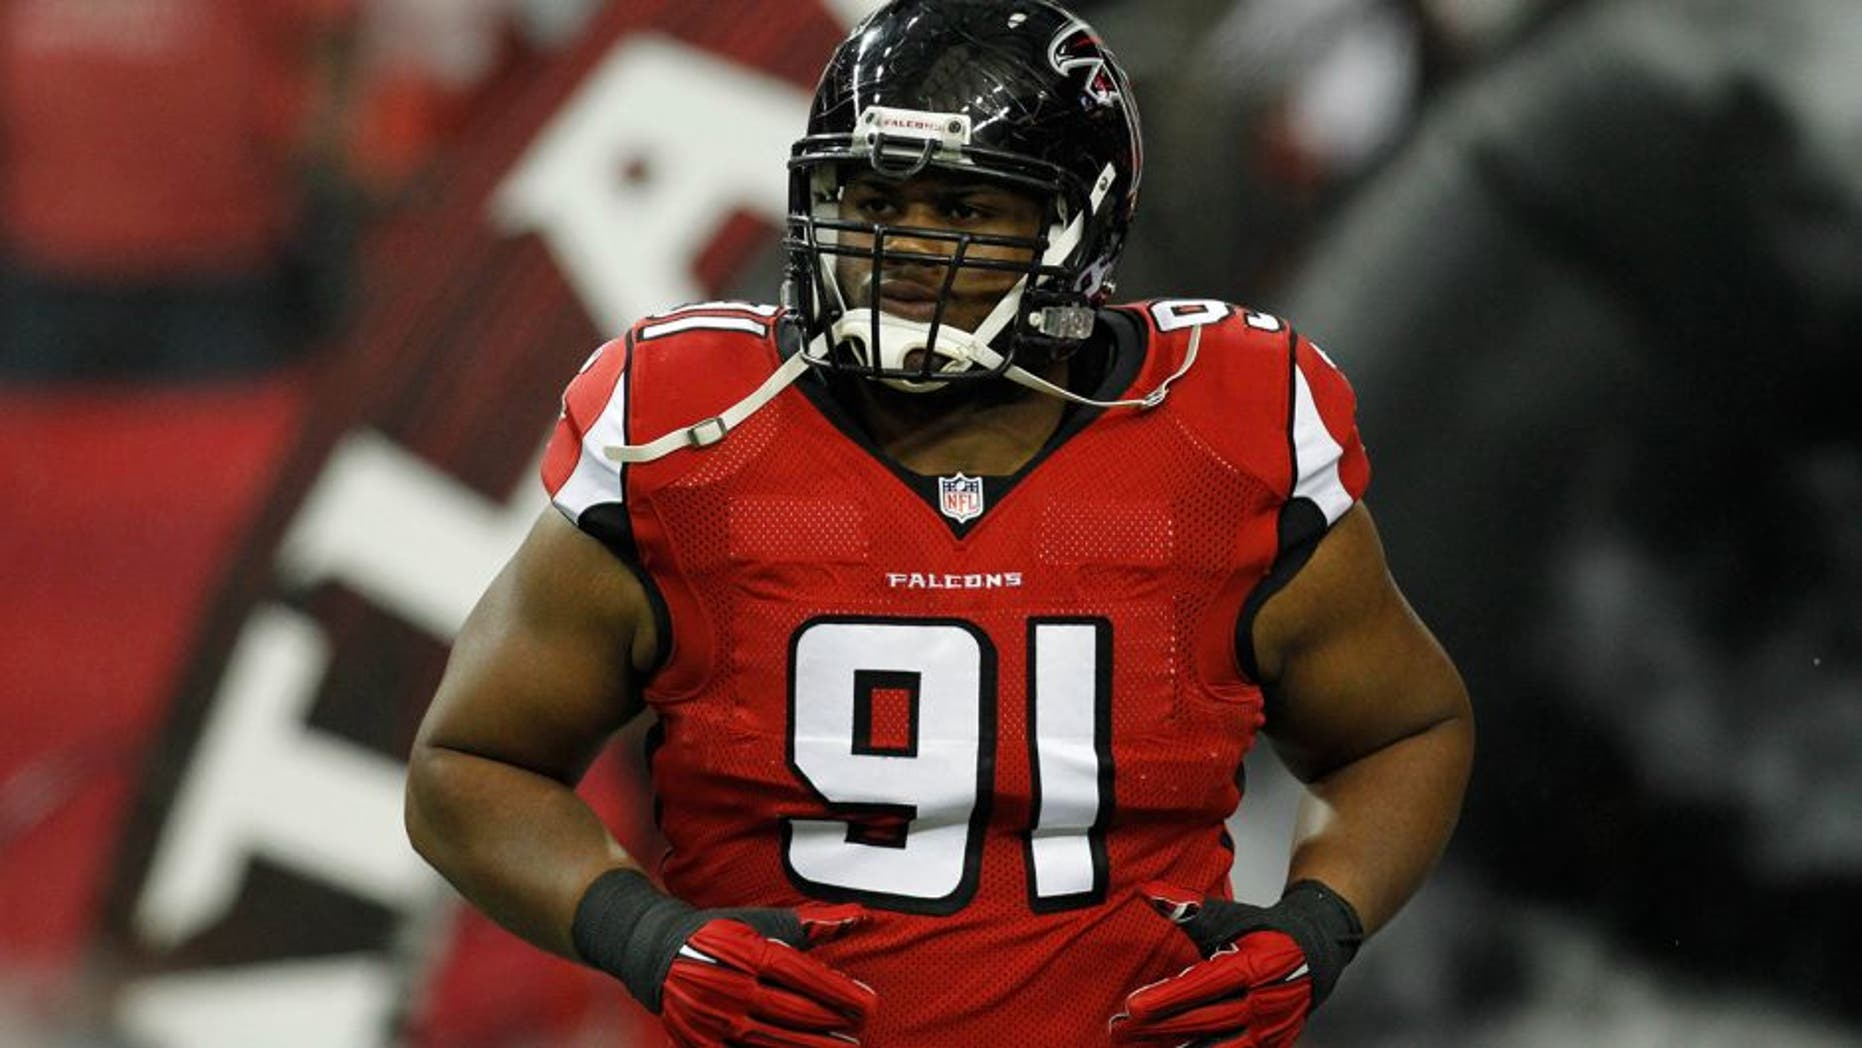 Nov 30, 2014; Atlanta, GA, USA; Atlanta Falcons defensive tackle Corey Peters (91) runs on the field before a game against the Arizona Cardinals at the Georgia Dome. Mandatory Credit: Brett Davis-USA TODAY Sports